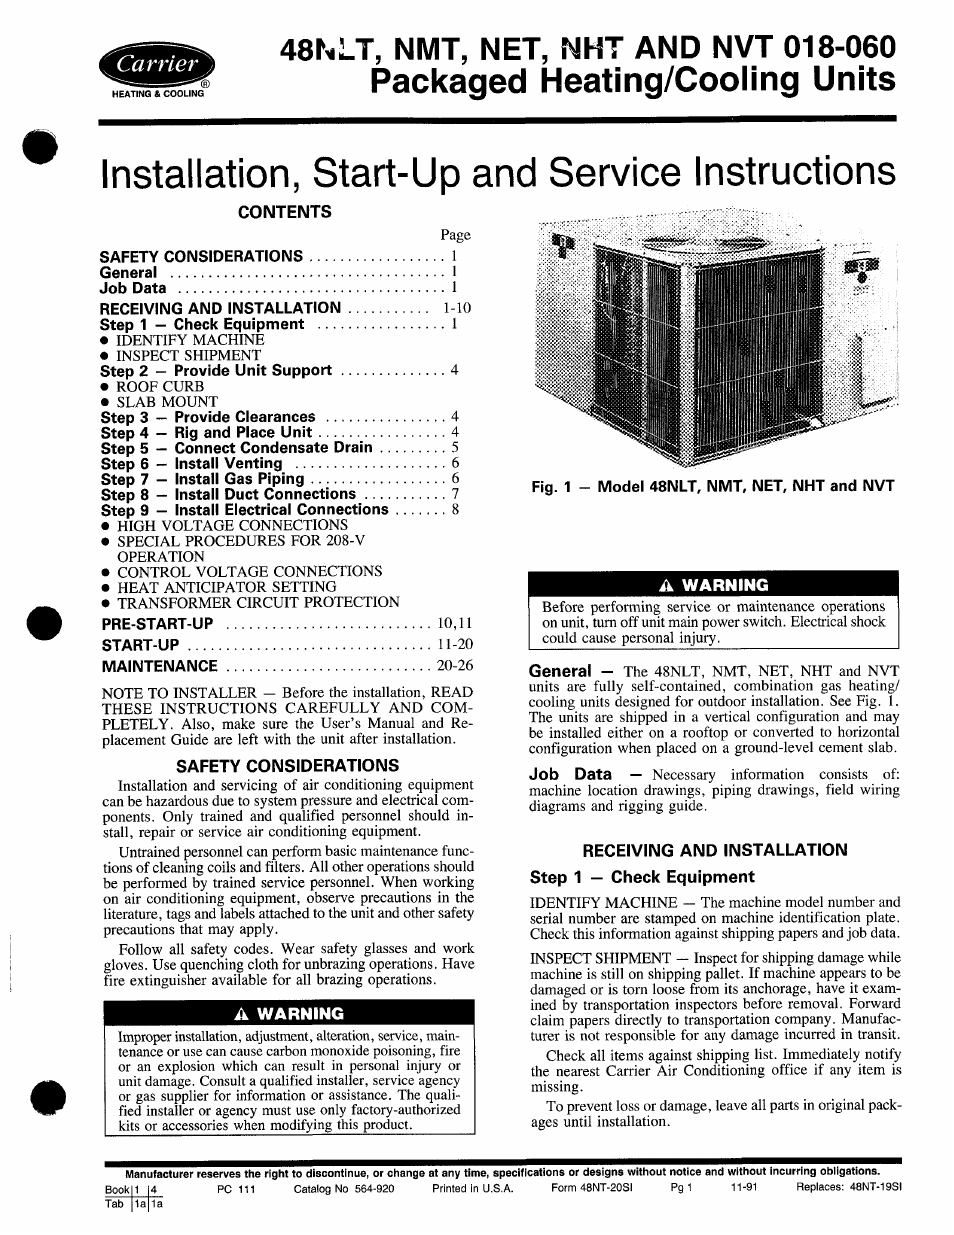 carrier 48nlt user manual 27 pages also for 48nmt 48nht 48net